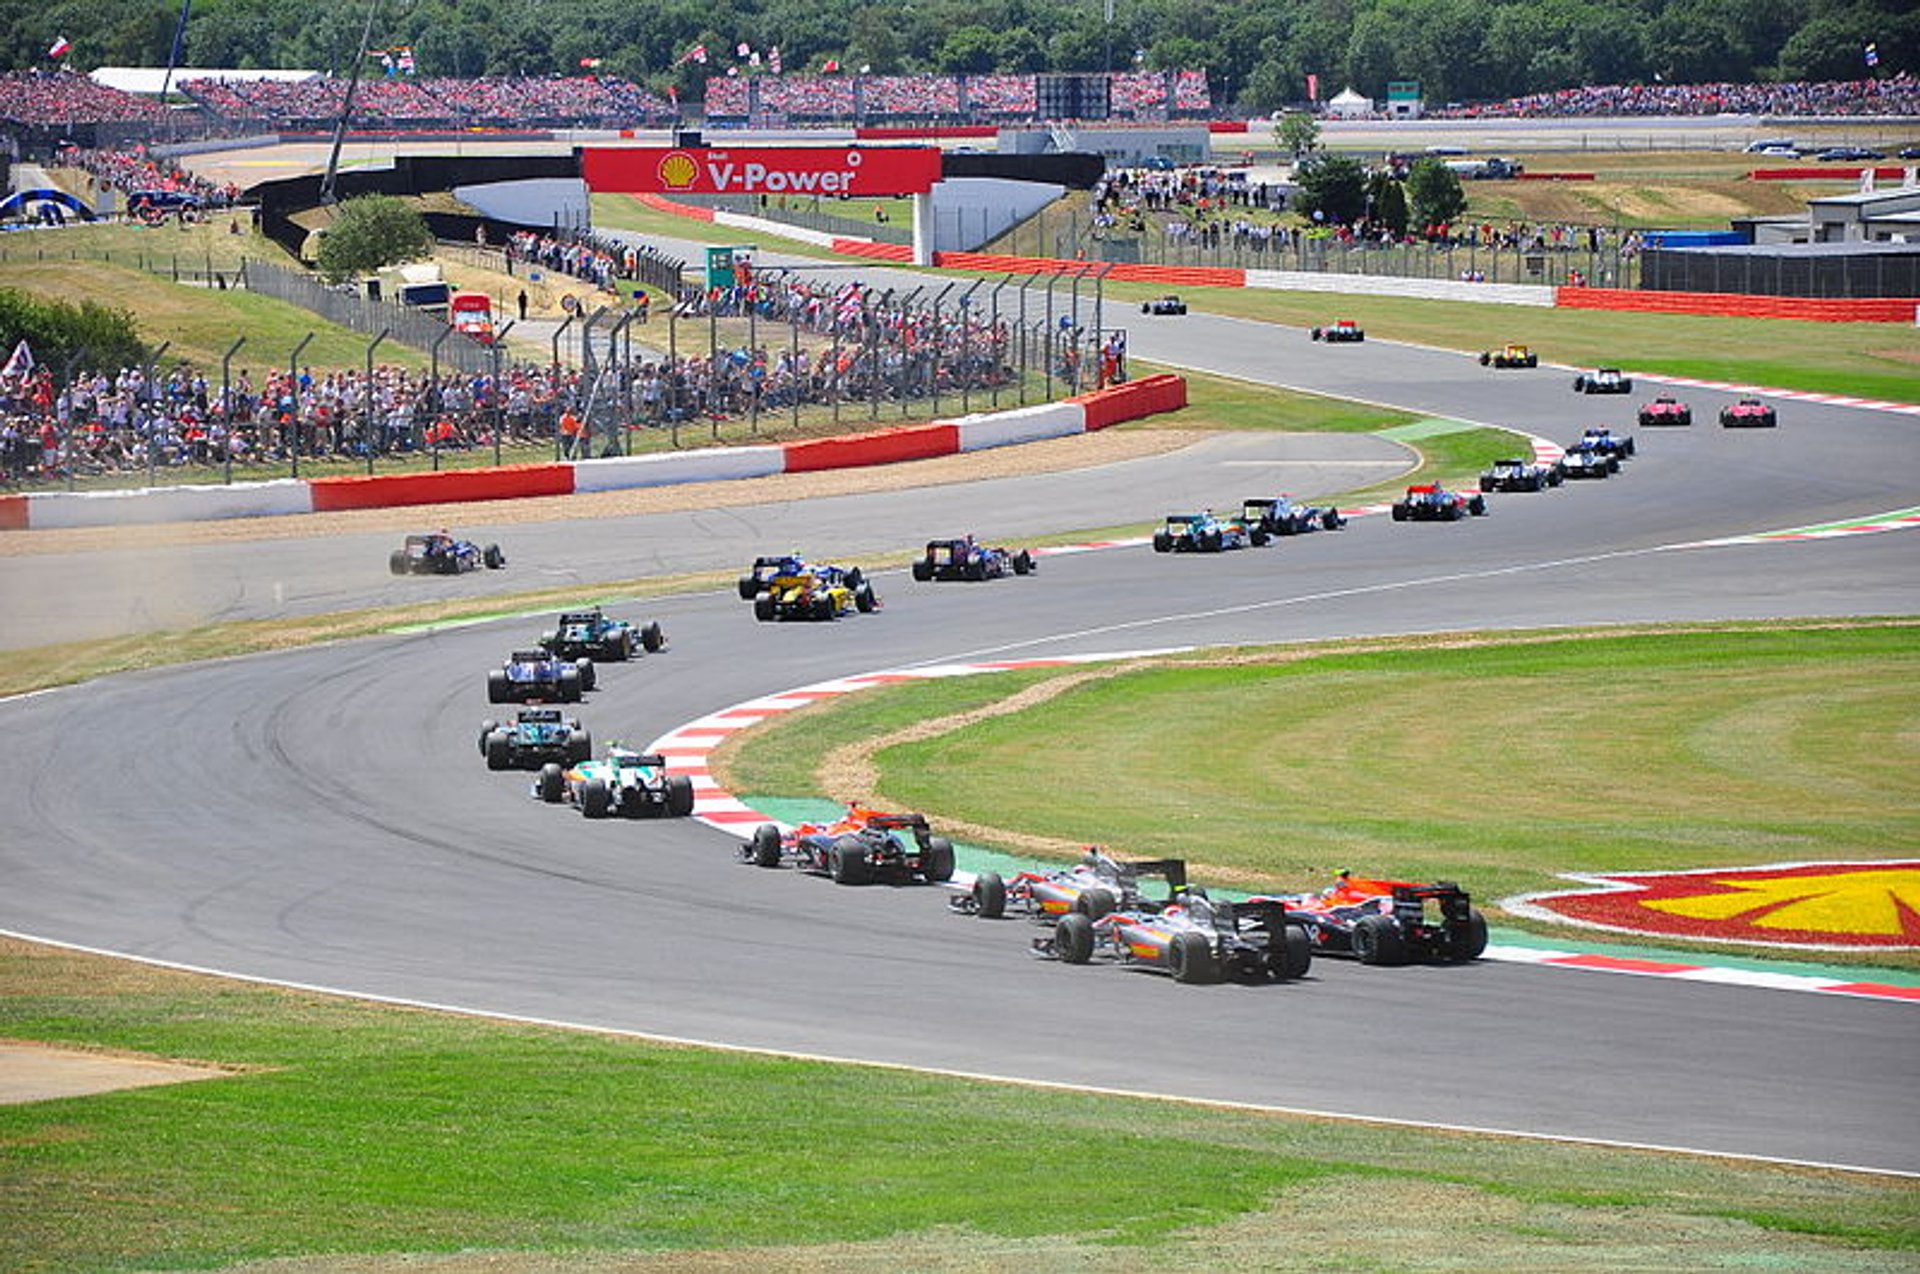 British Grand Prix in England - Best Season 2019